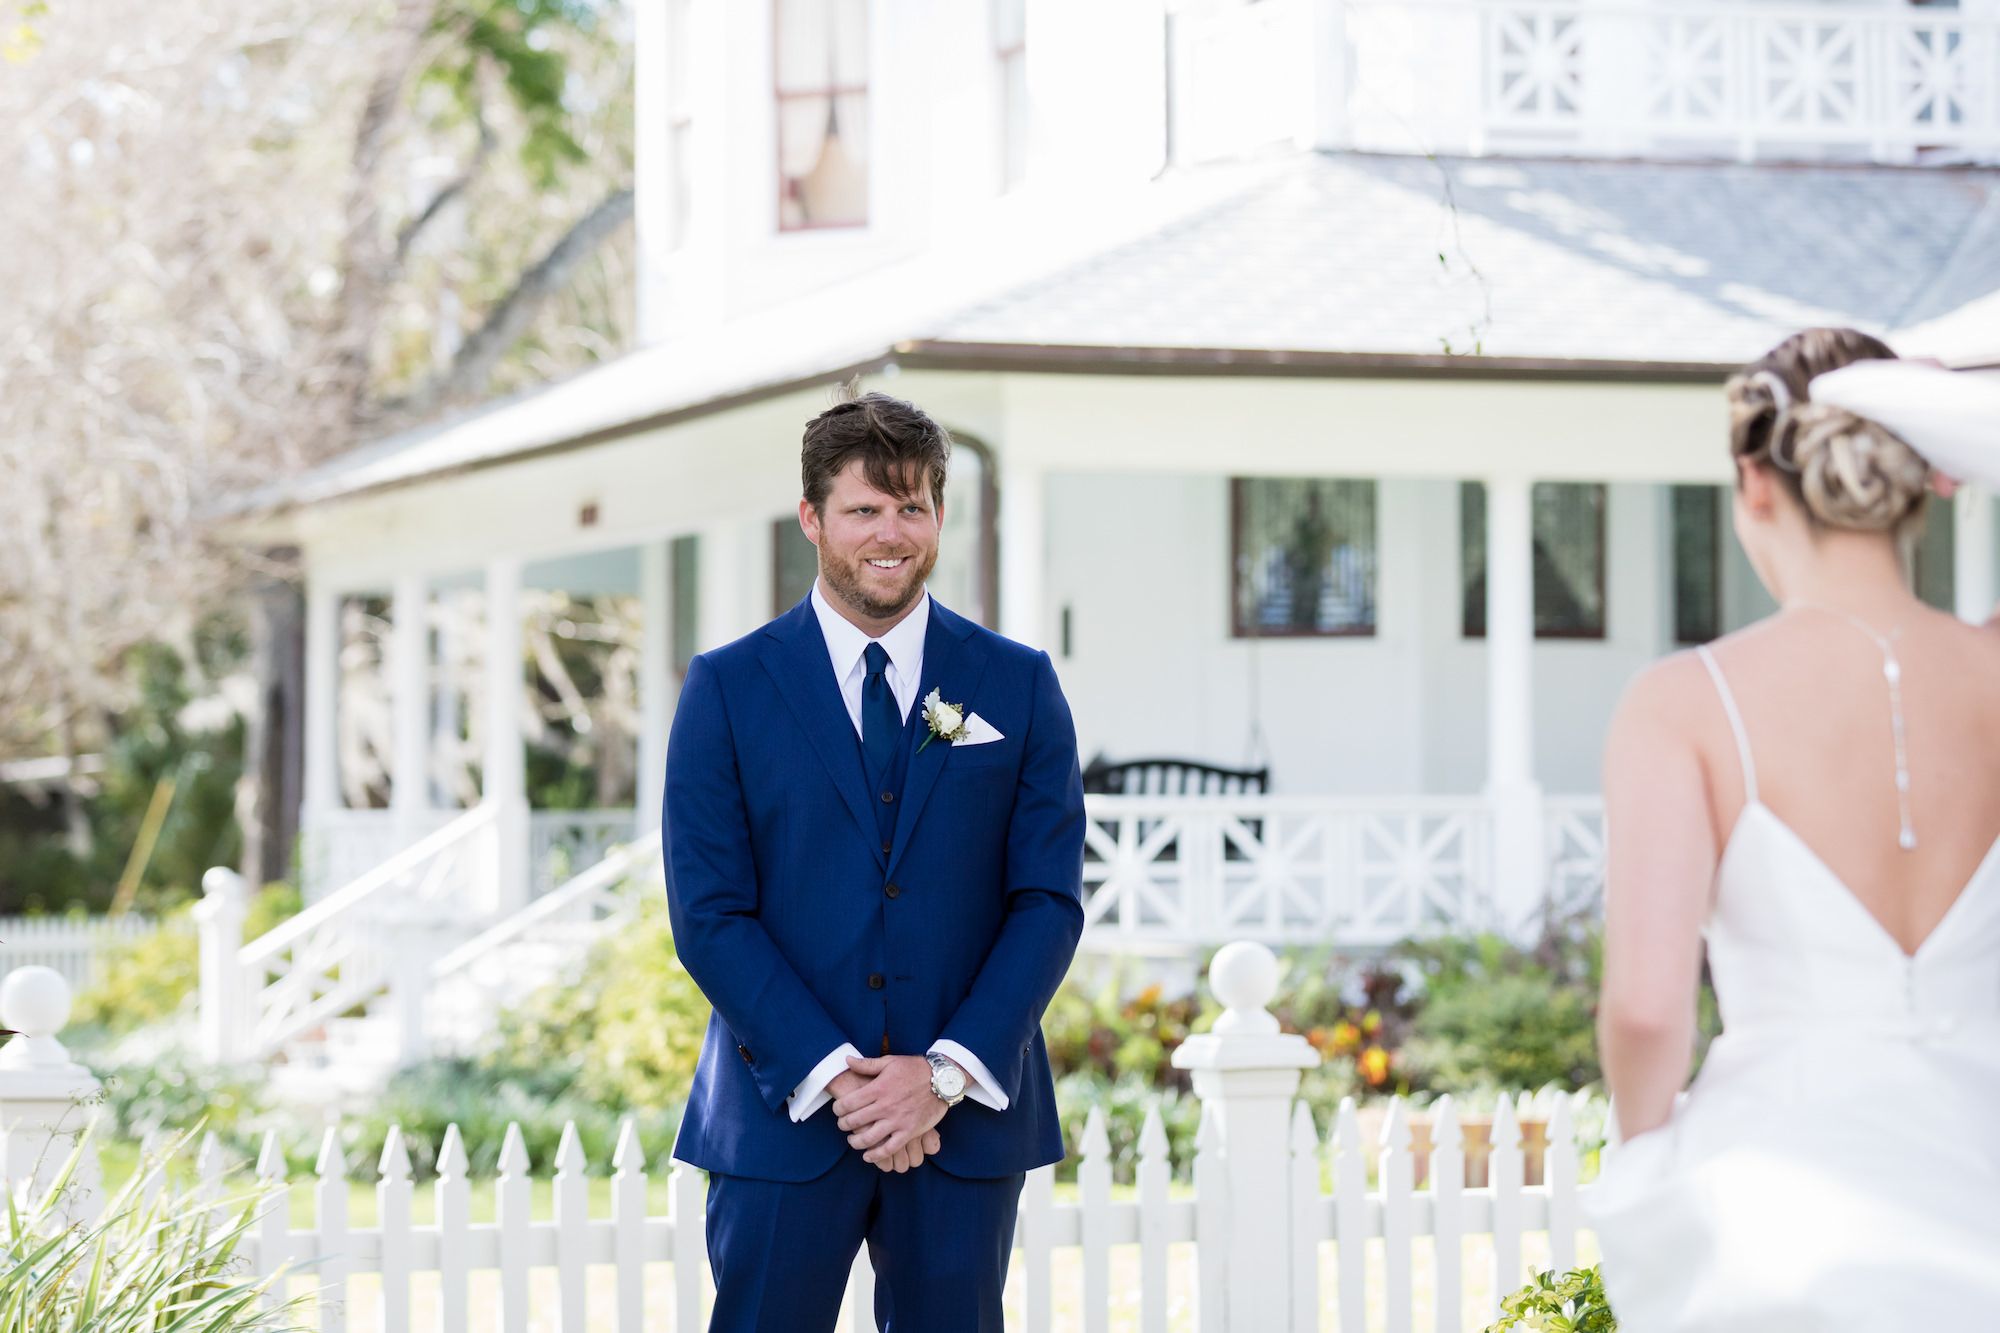 Tampa Bay Groom in Navy Blue Suit and Tie and Bride First Look Wedding Portrait